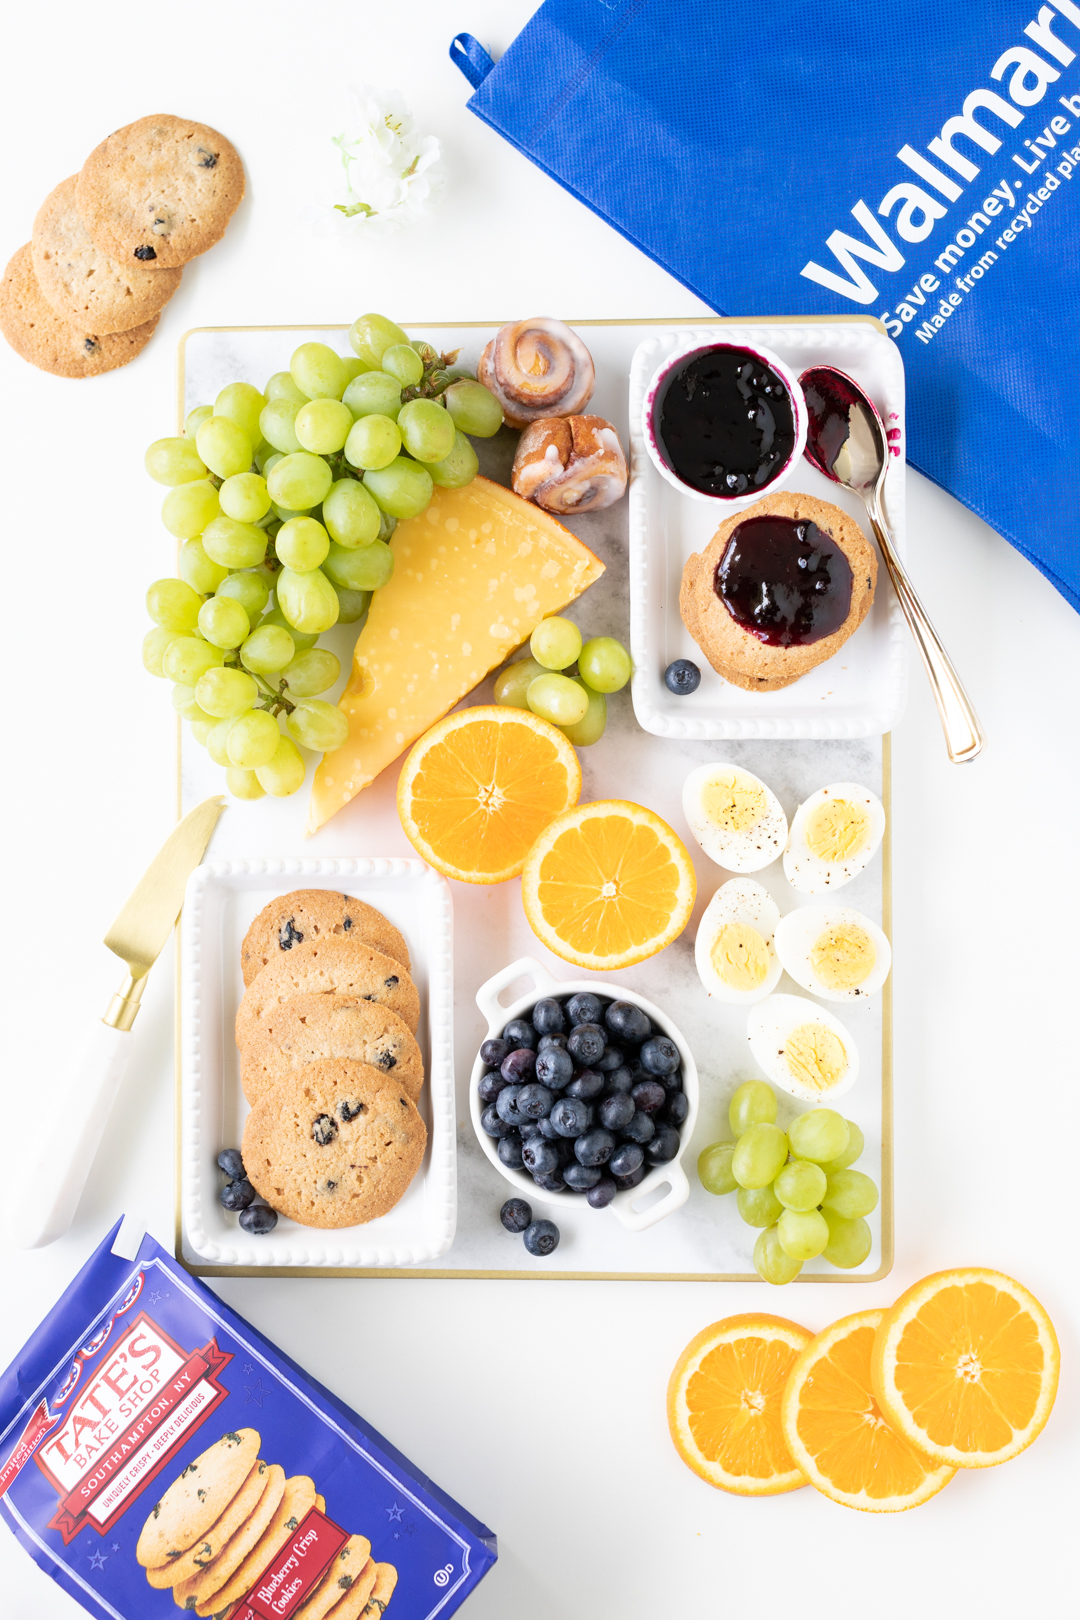 simple brunch tray on a rectangular tray with a walmart bag nearby